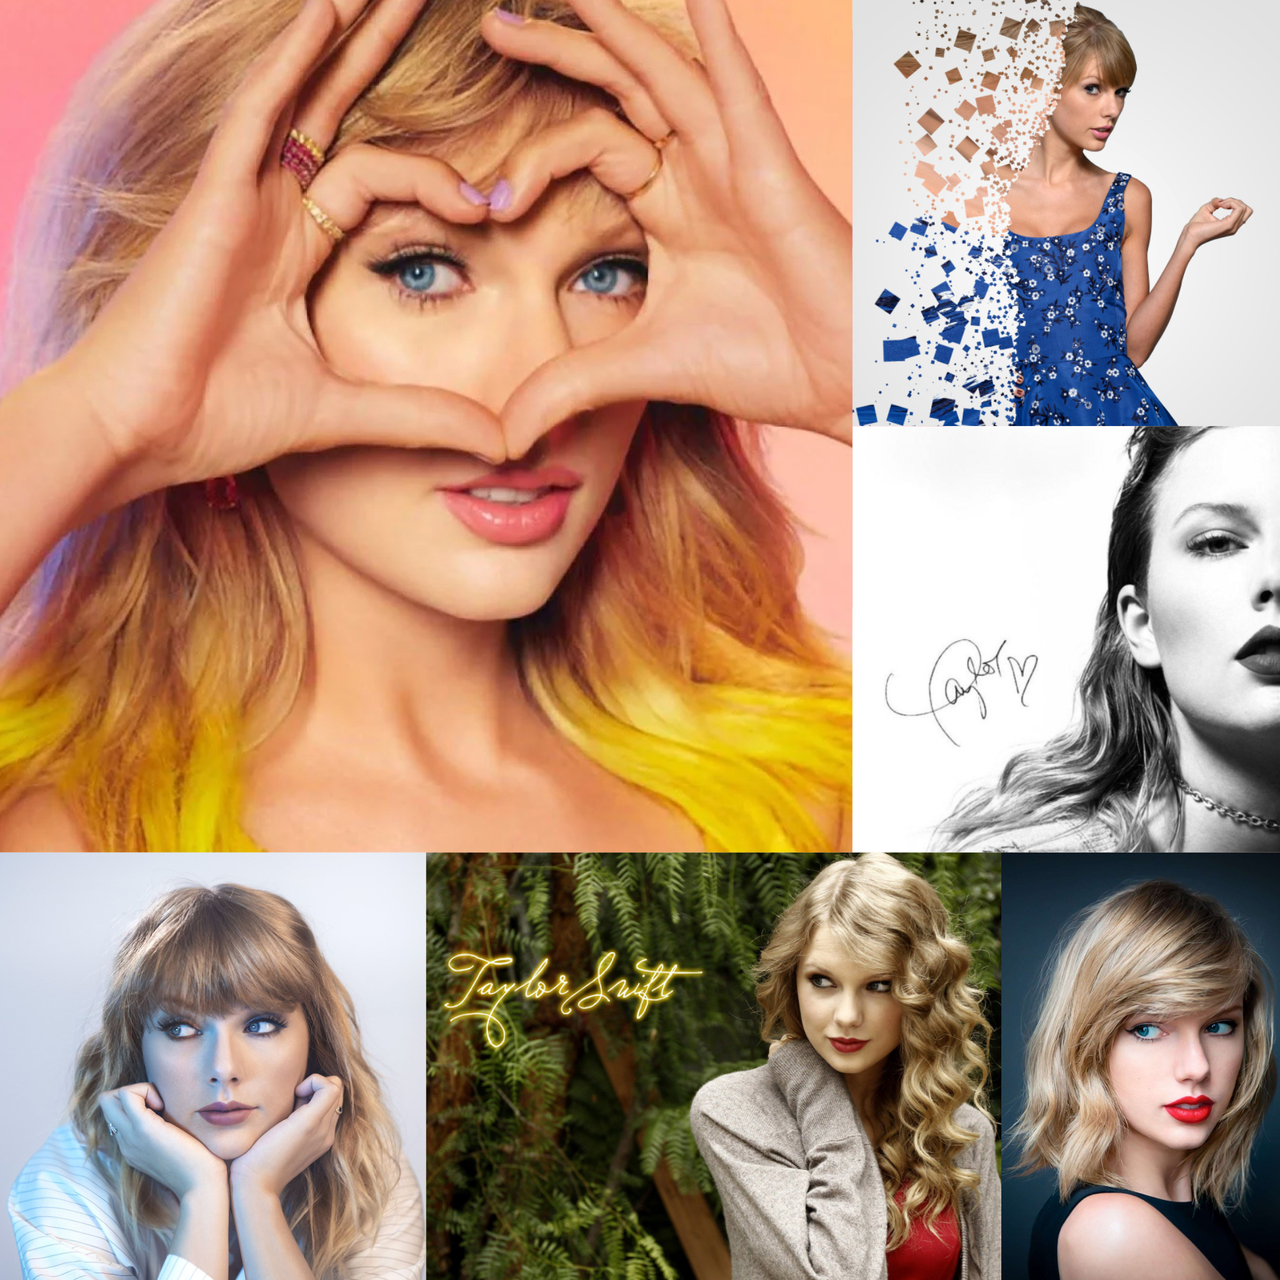 article, Swift, and blank space image